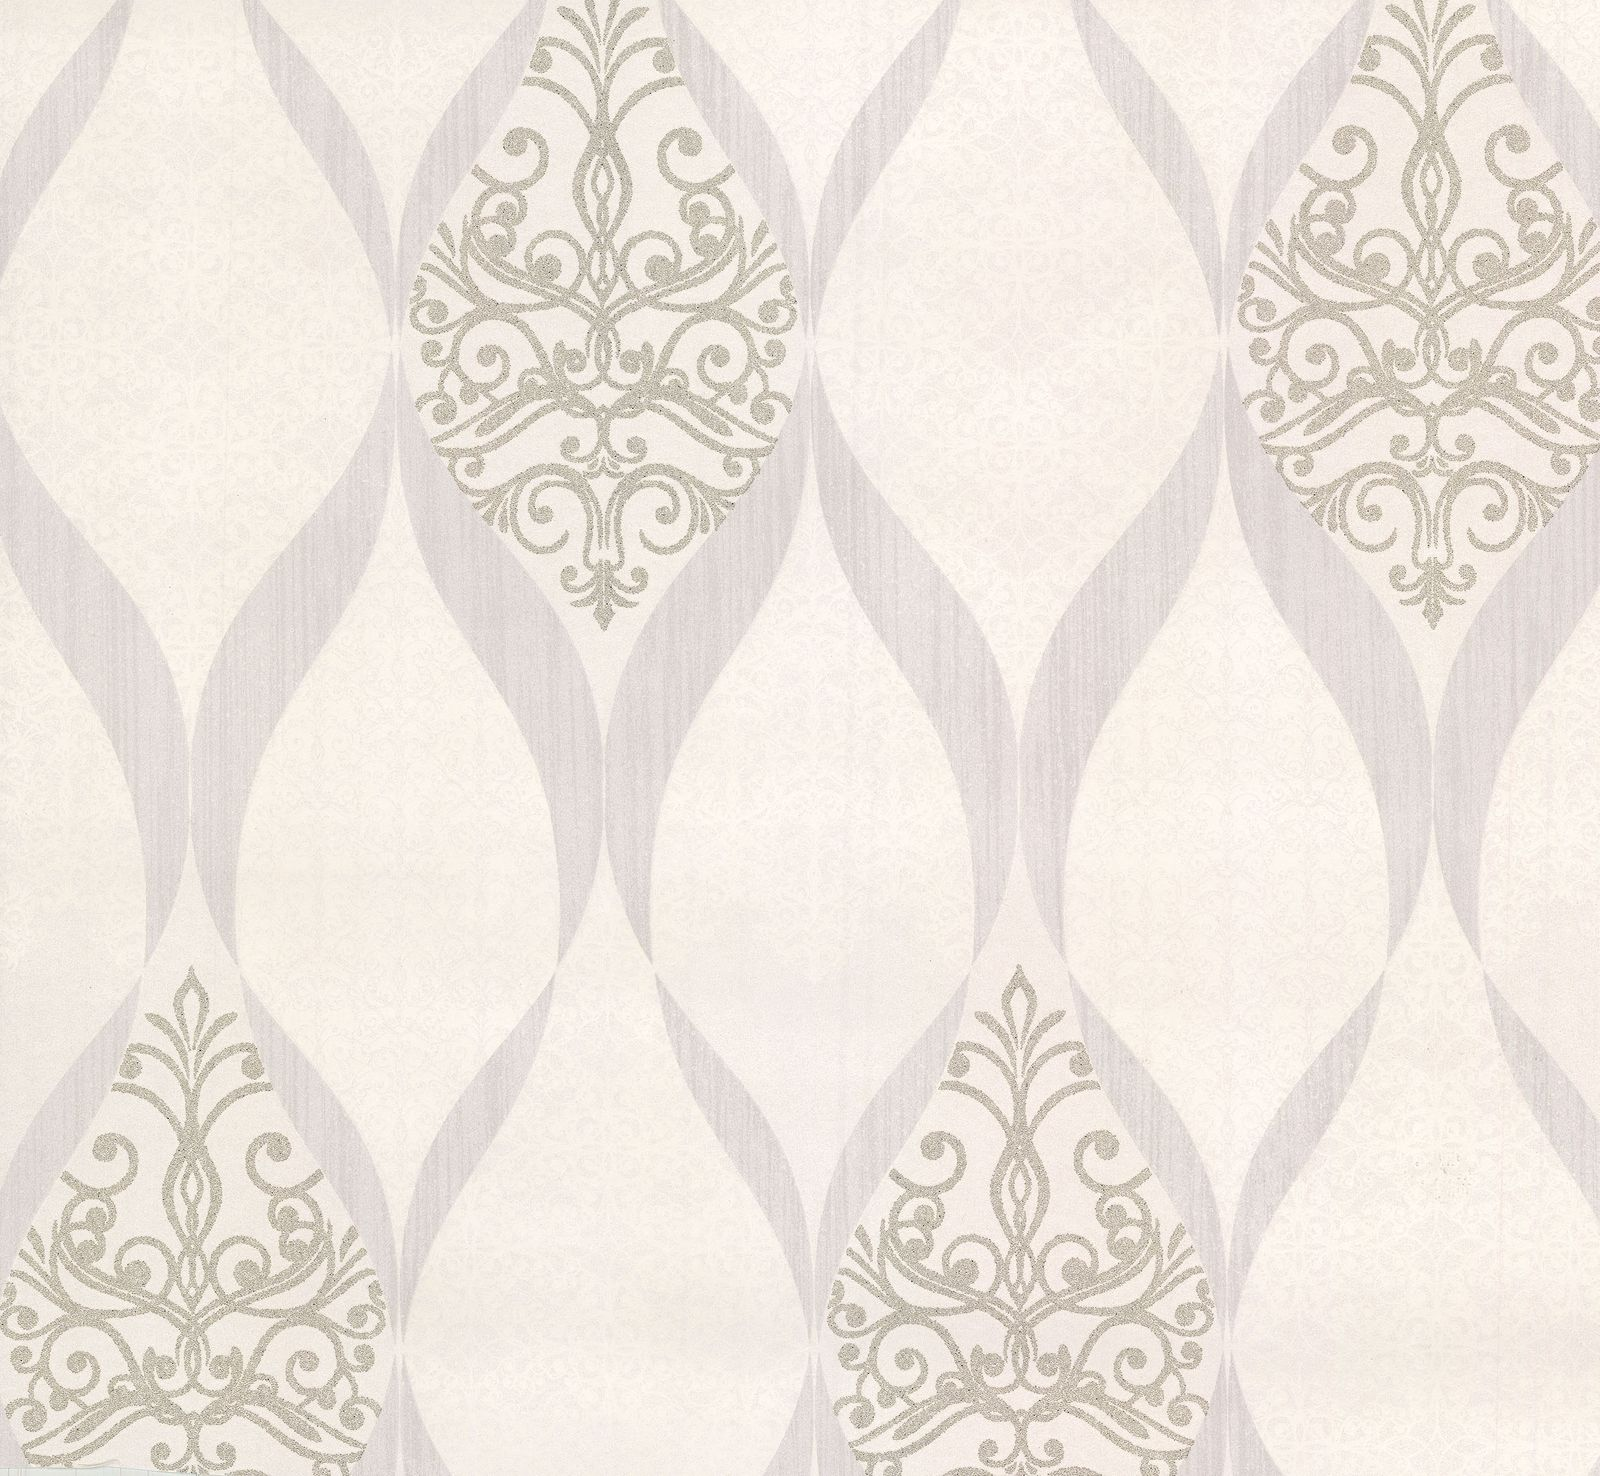 Wallpaper Kretschmer Deluxe Orient Glass Beads White Silver 41006 10